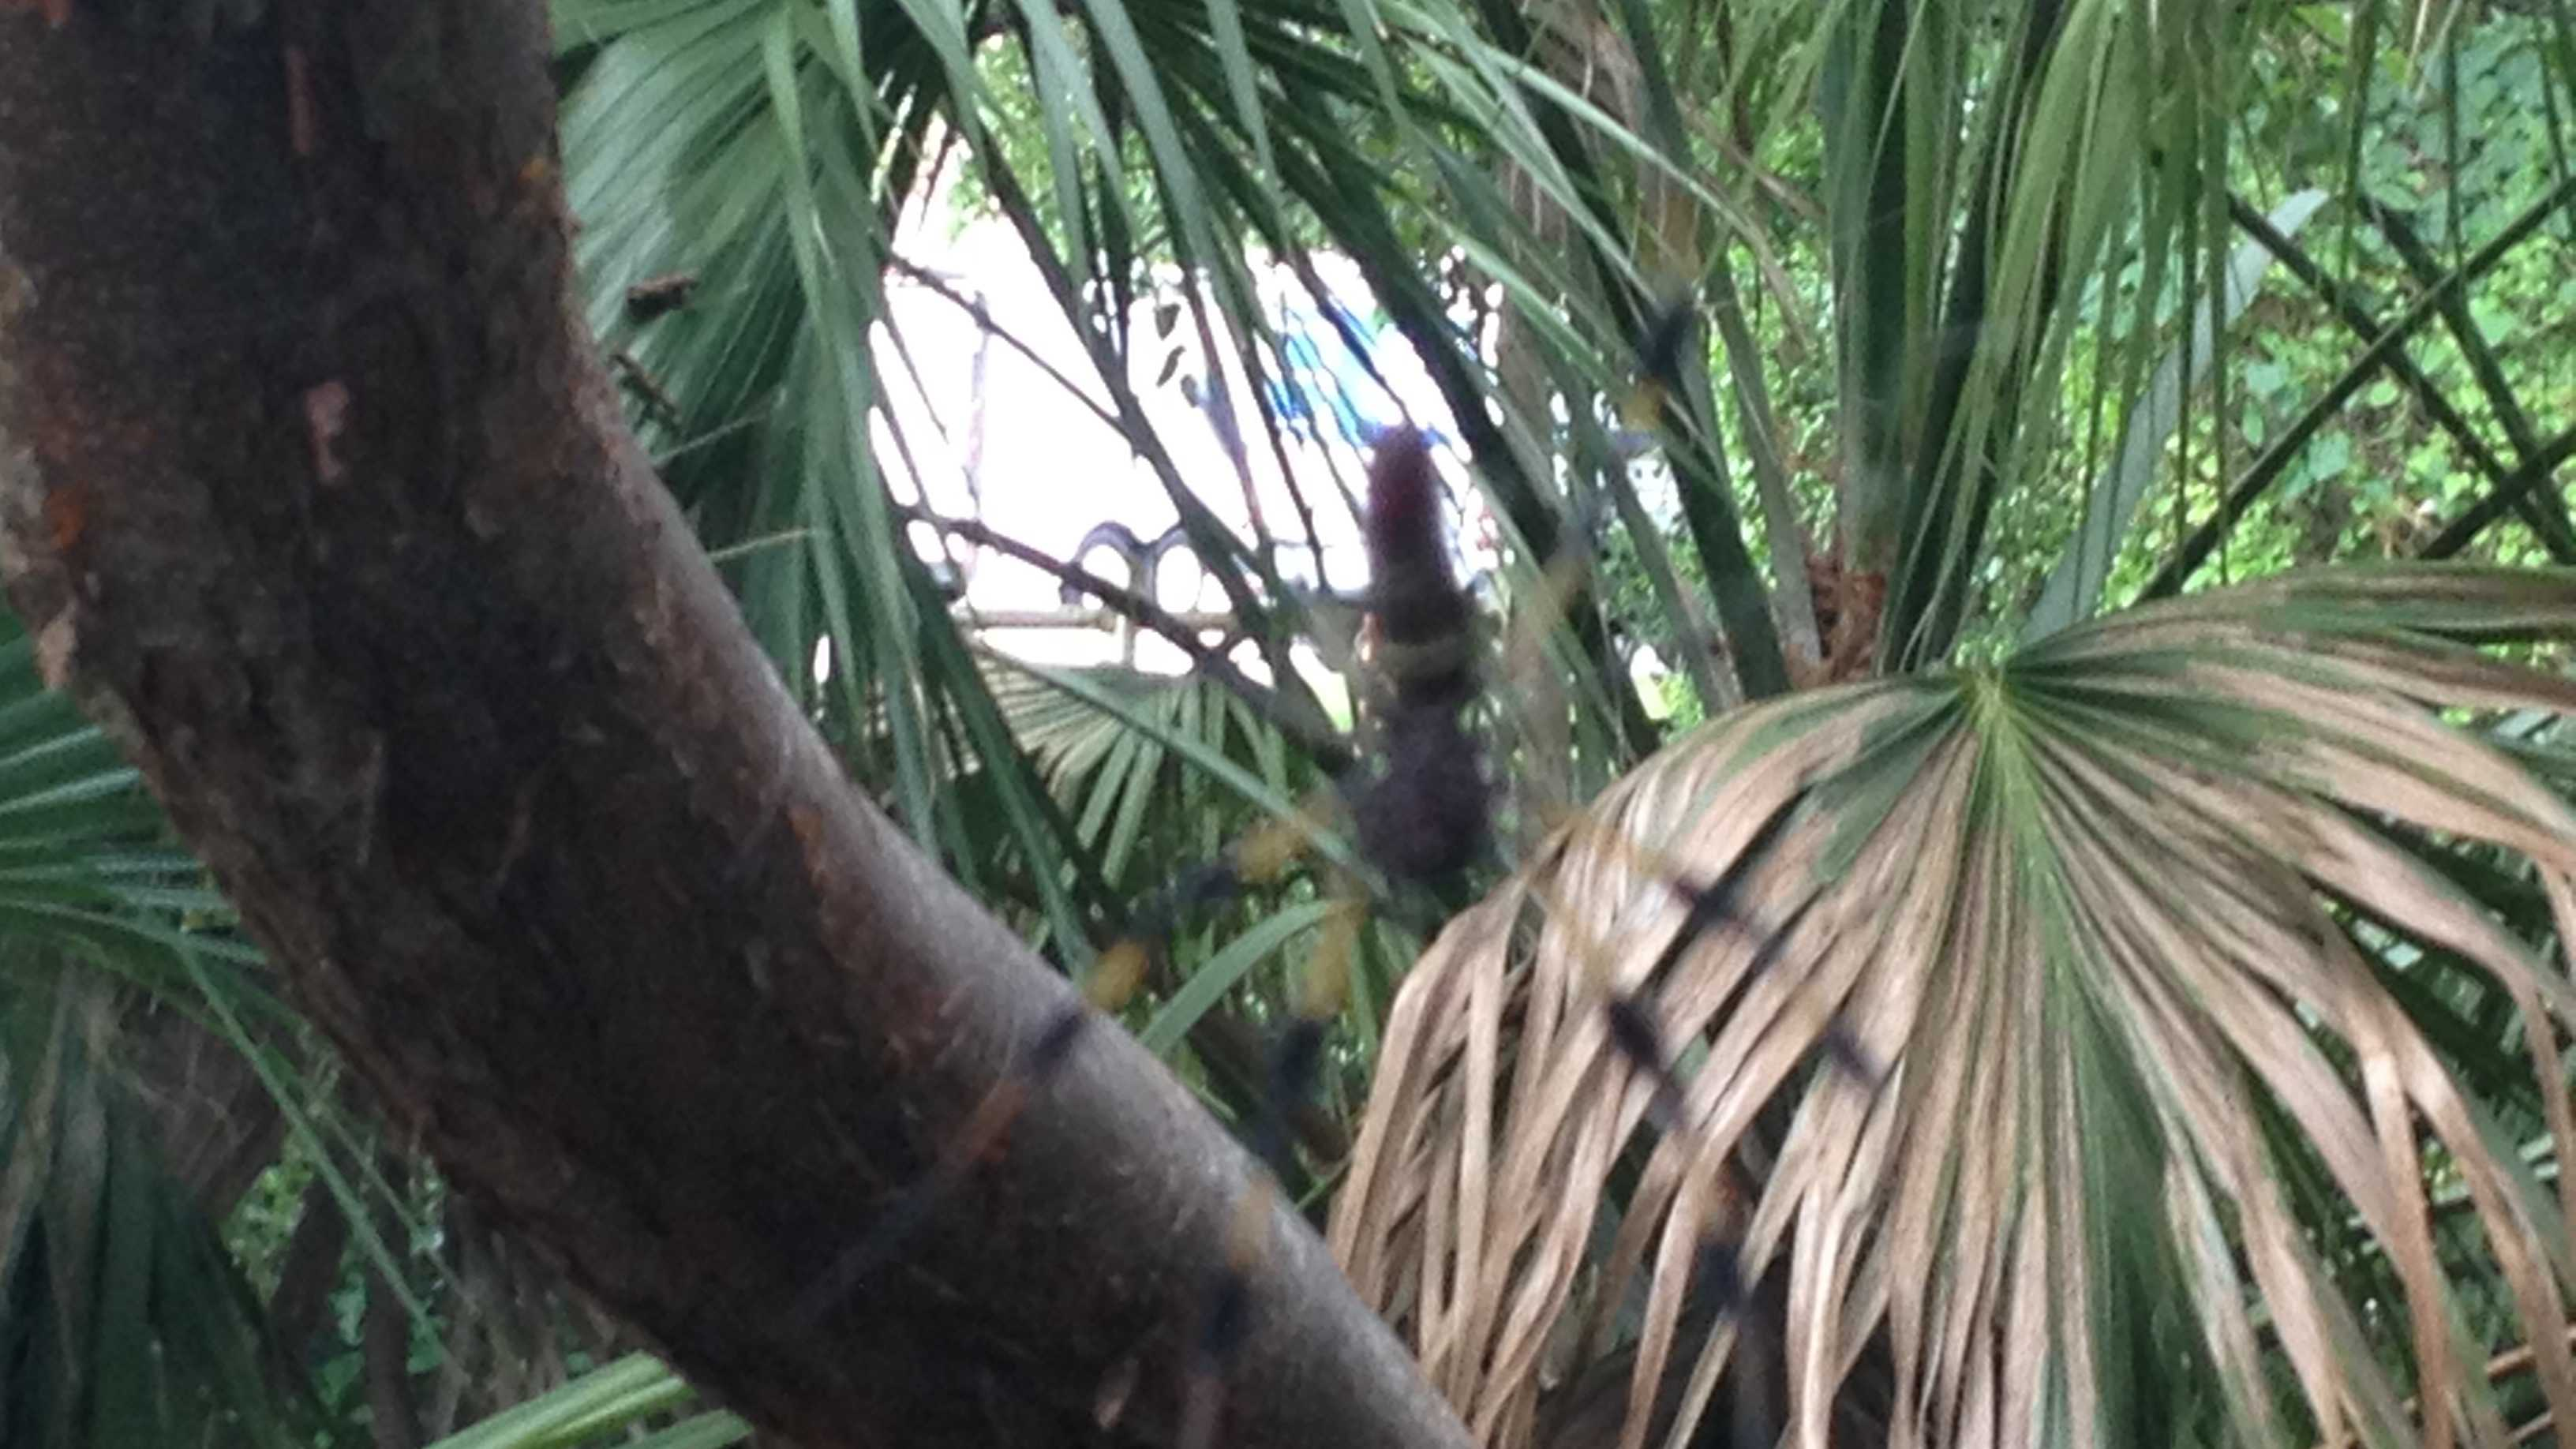 Look out above. It's banana spider season in South Florida.